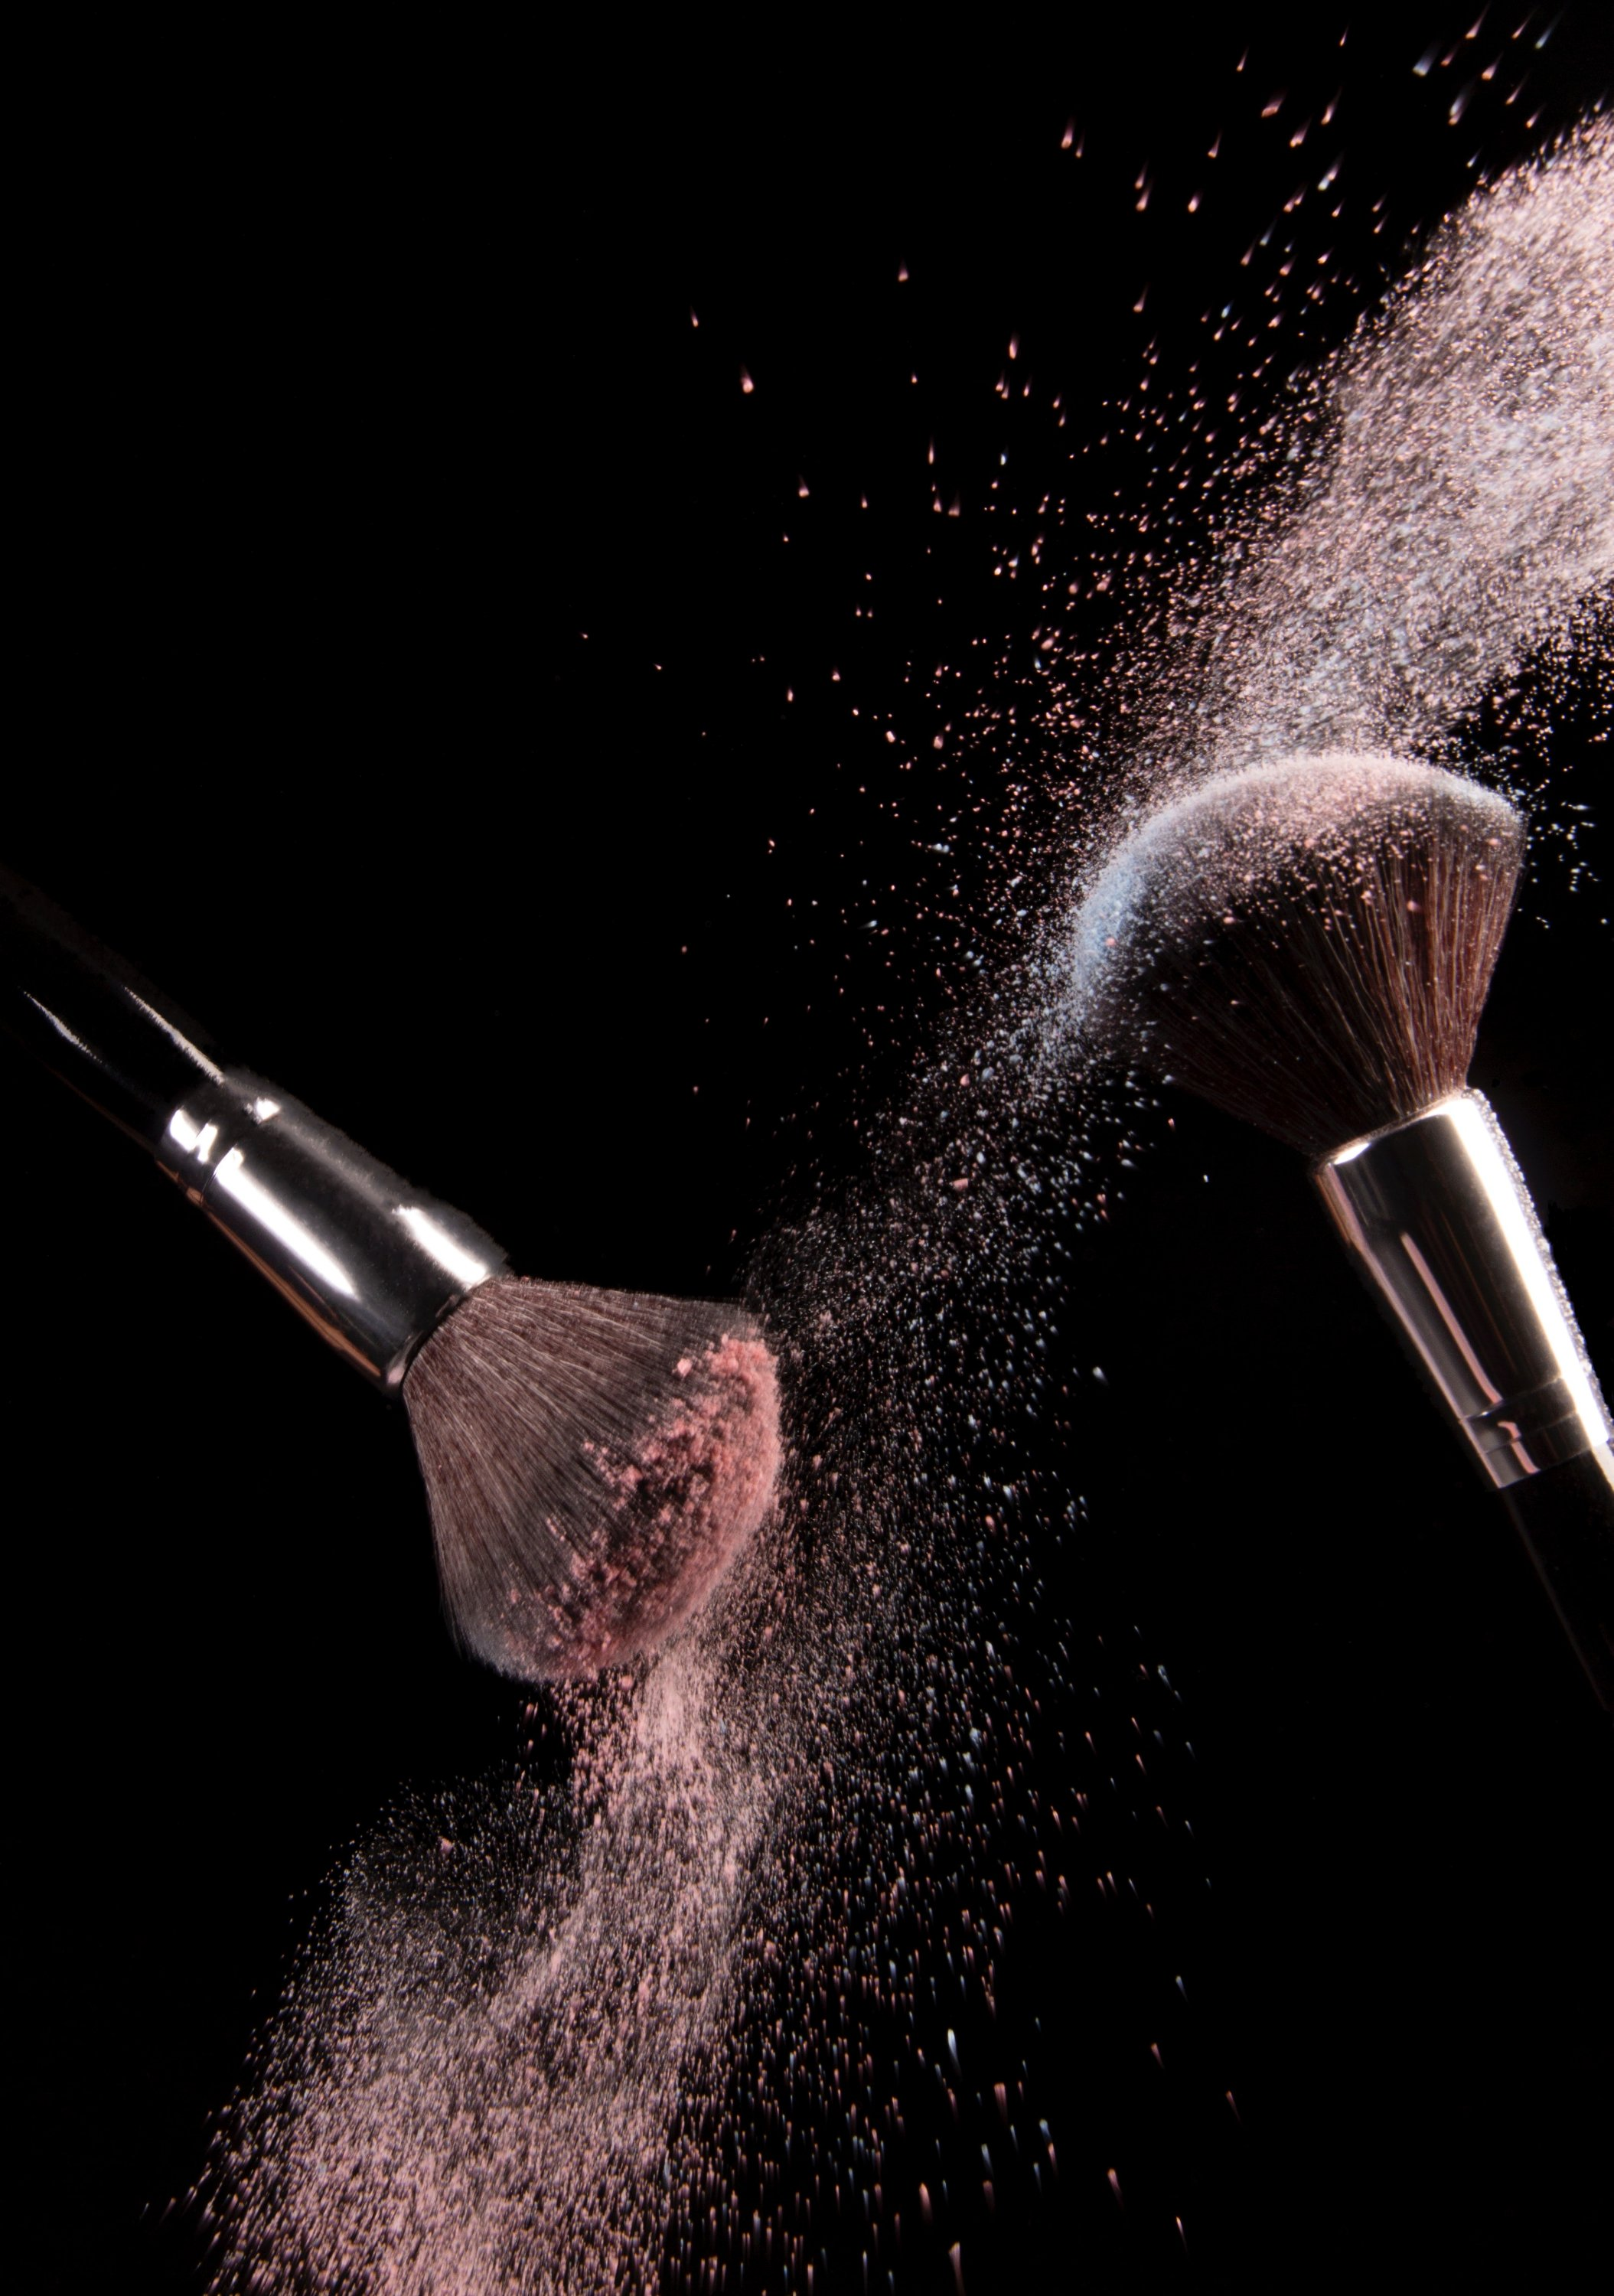 cosmetics-makeup-brushes-and-powder-dust-explosion-19266202150366022812747209.jpg